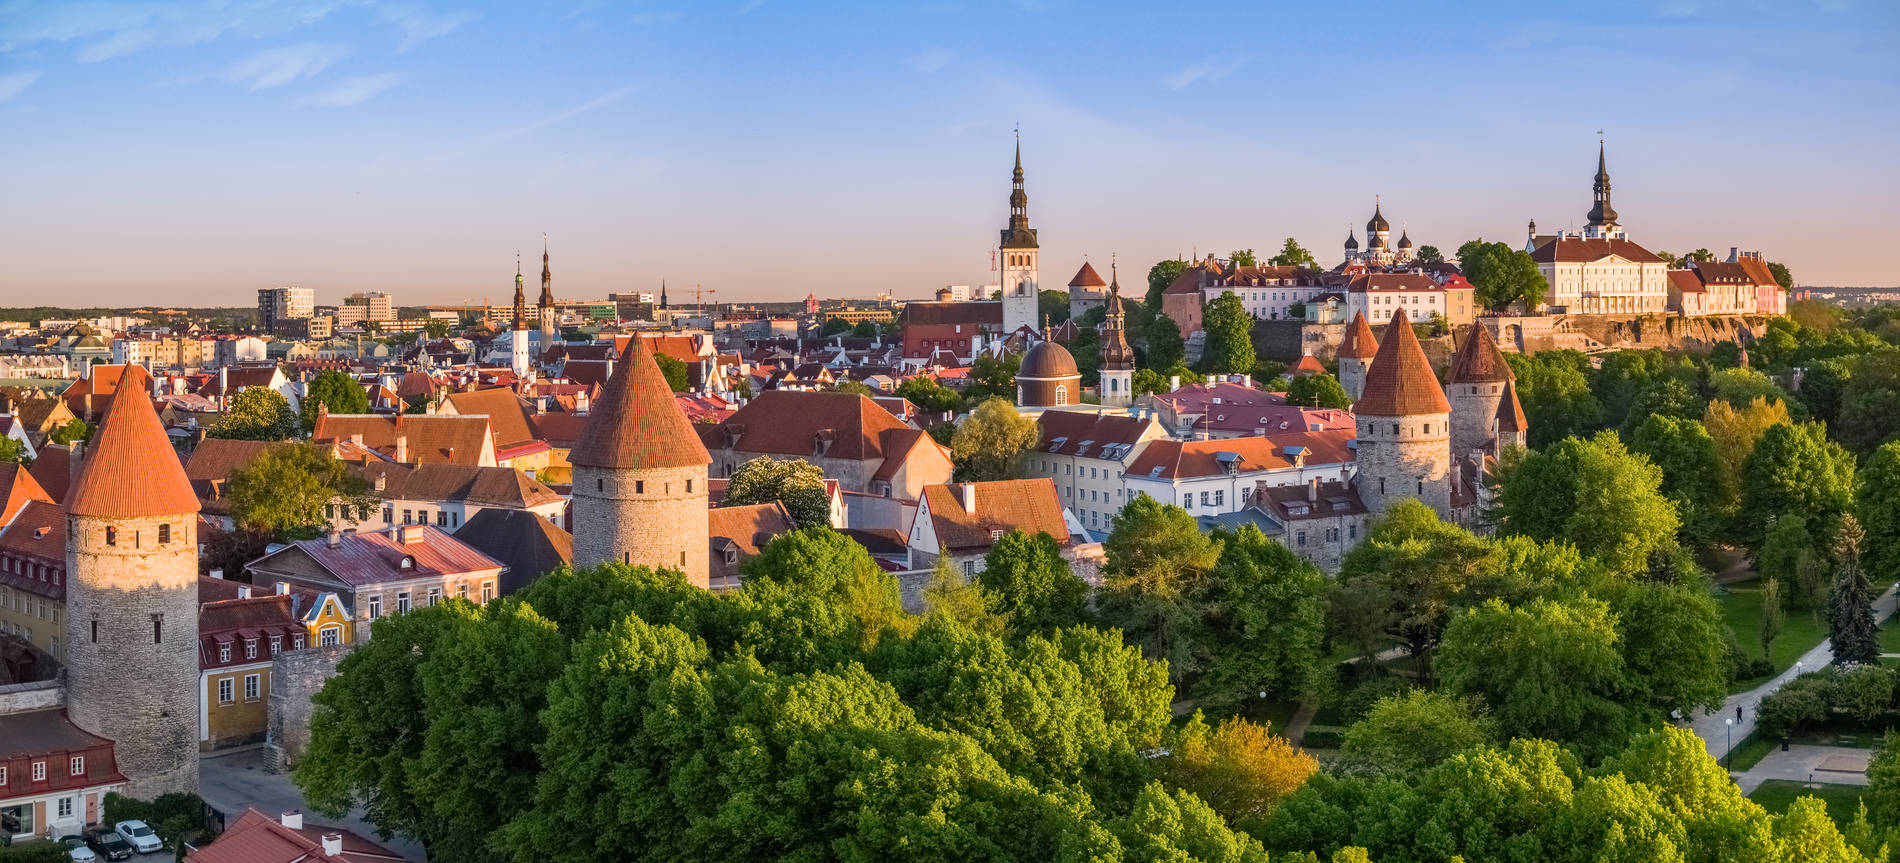 Aerial view of the Old Town in Tallinn, Estonia